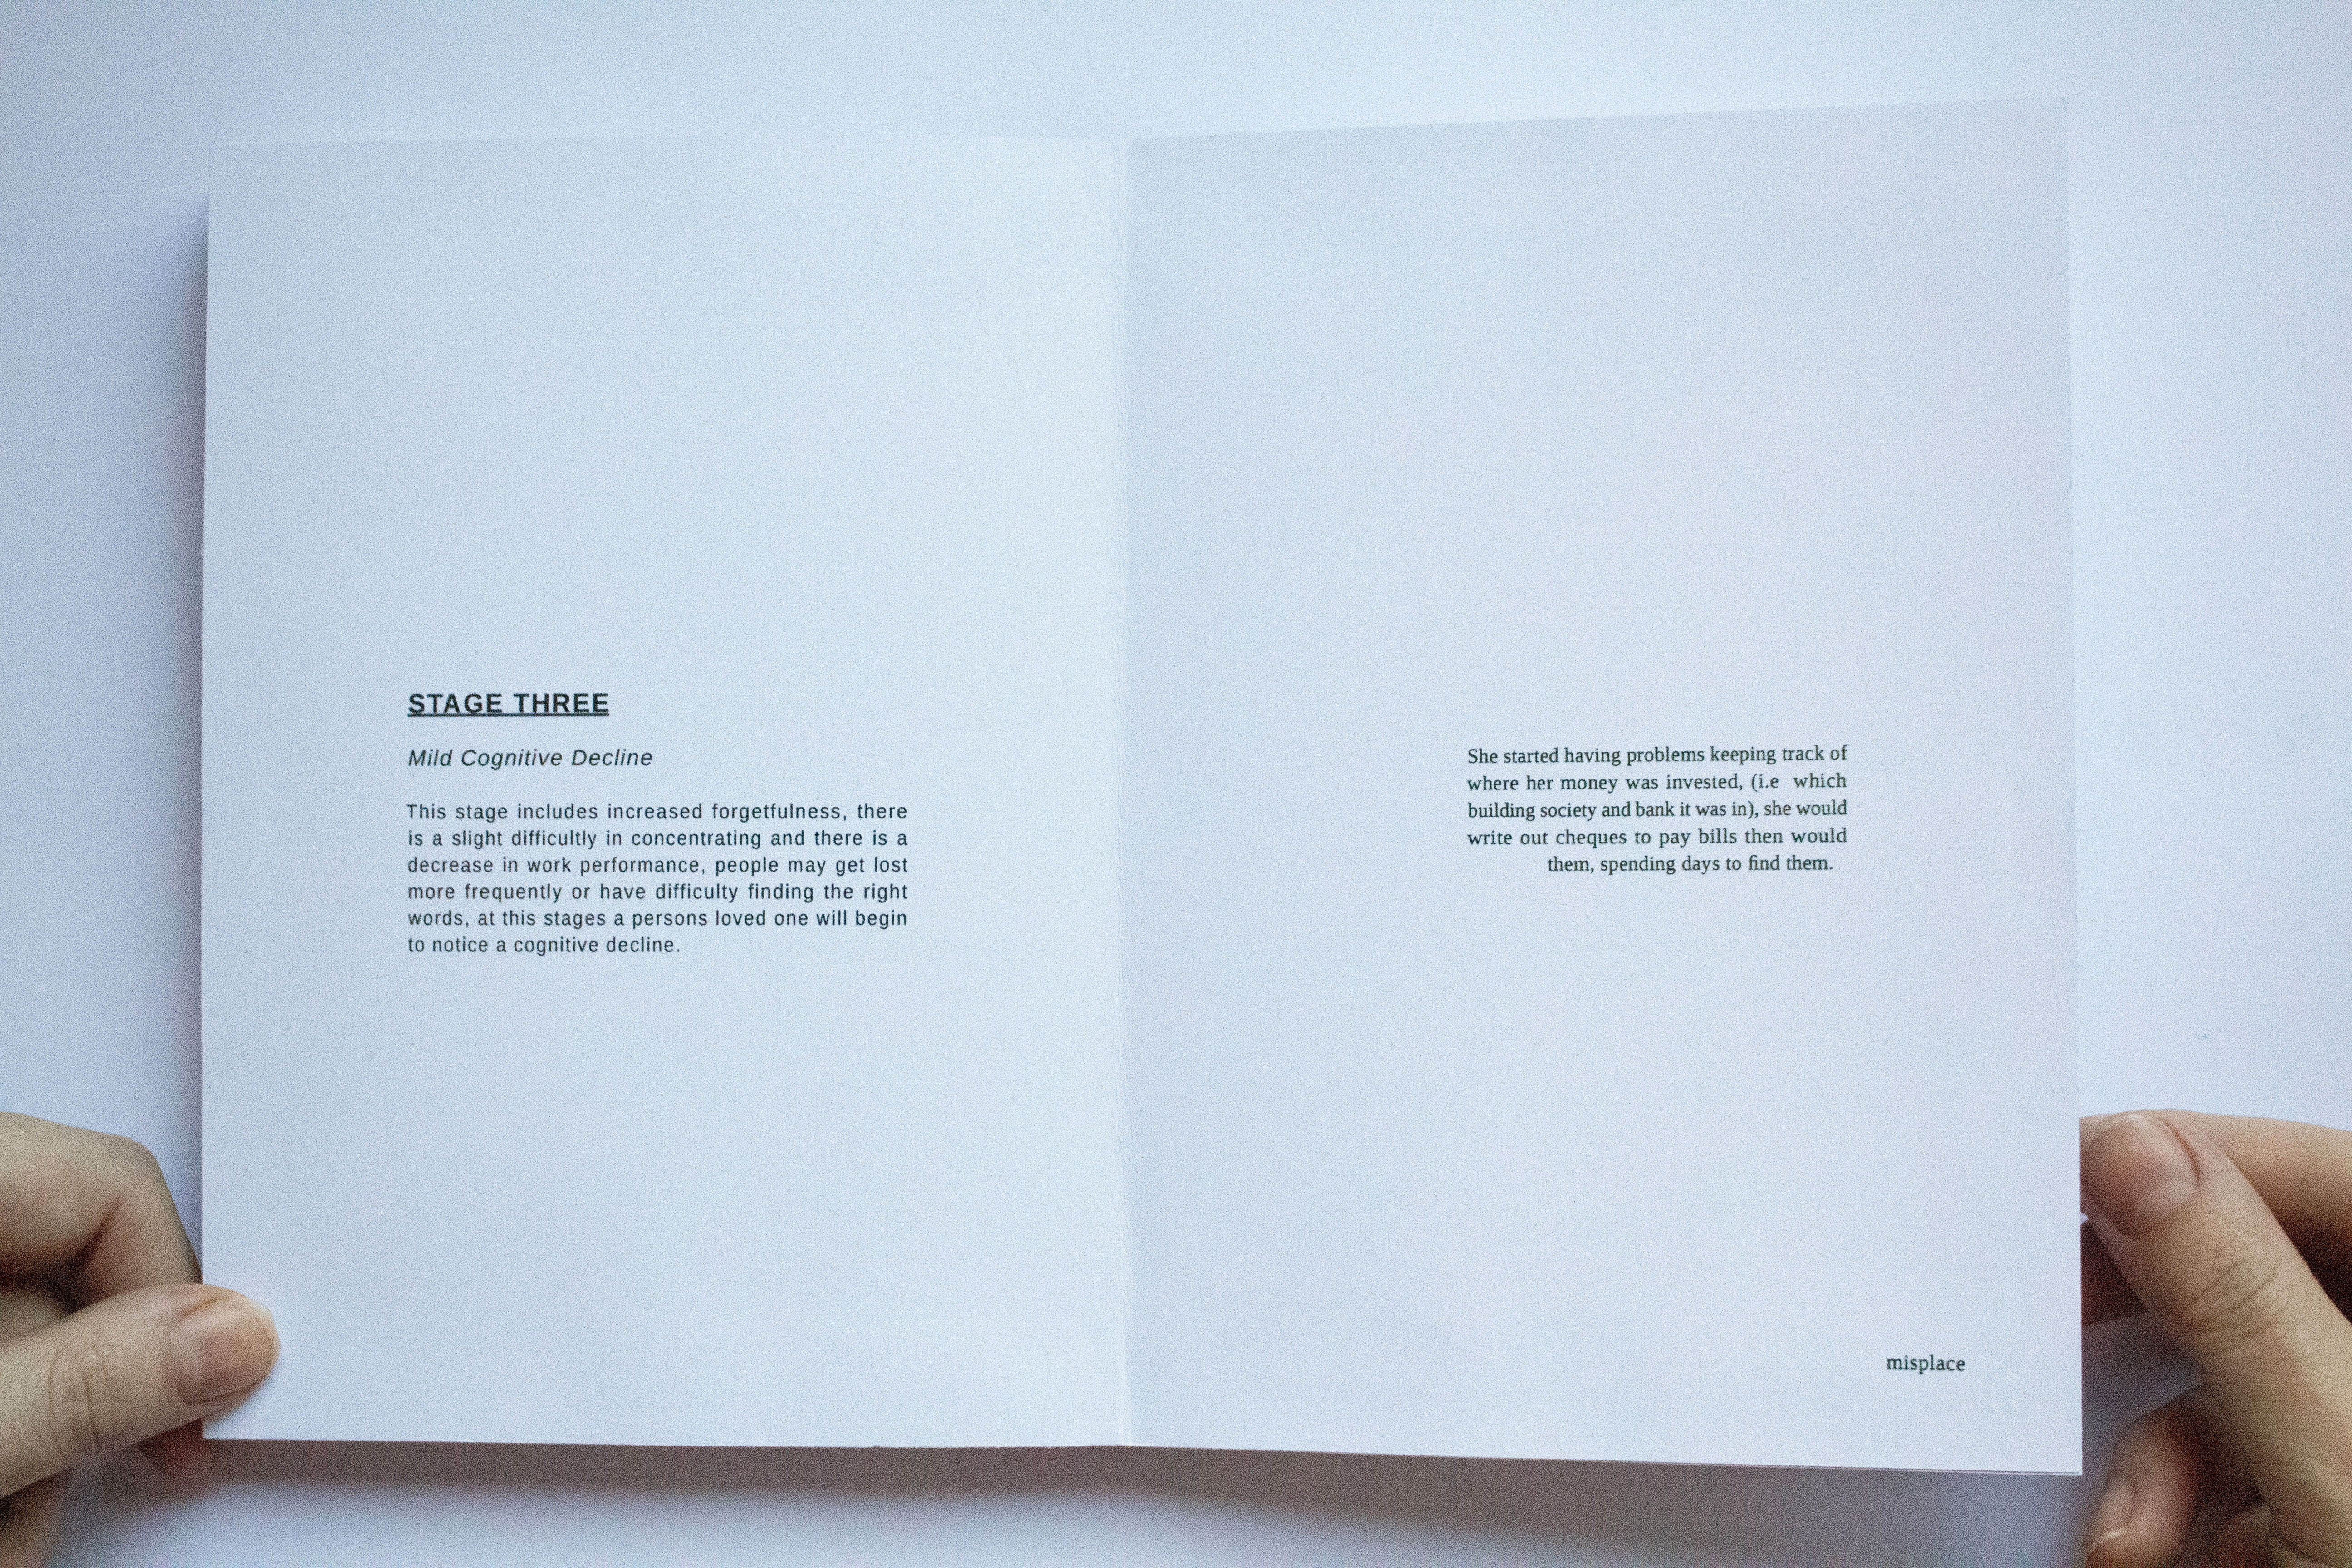 Inner page of book titled Stage 3 with small paragraphs in the middle of the page.